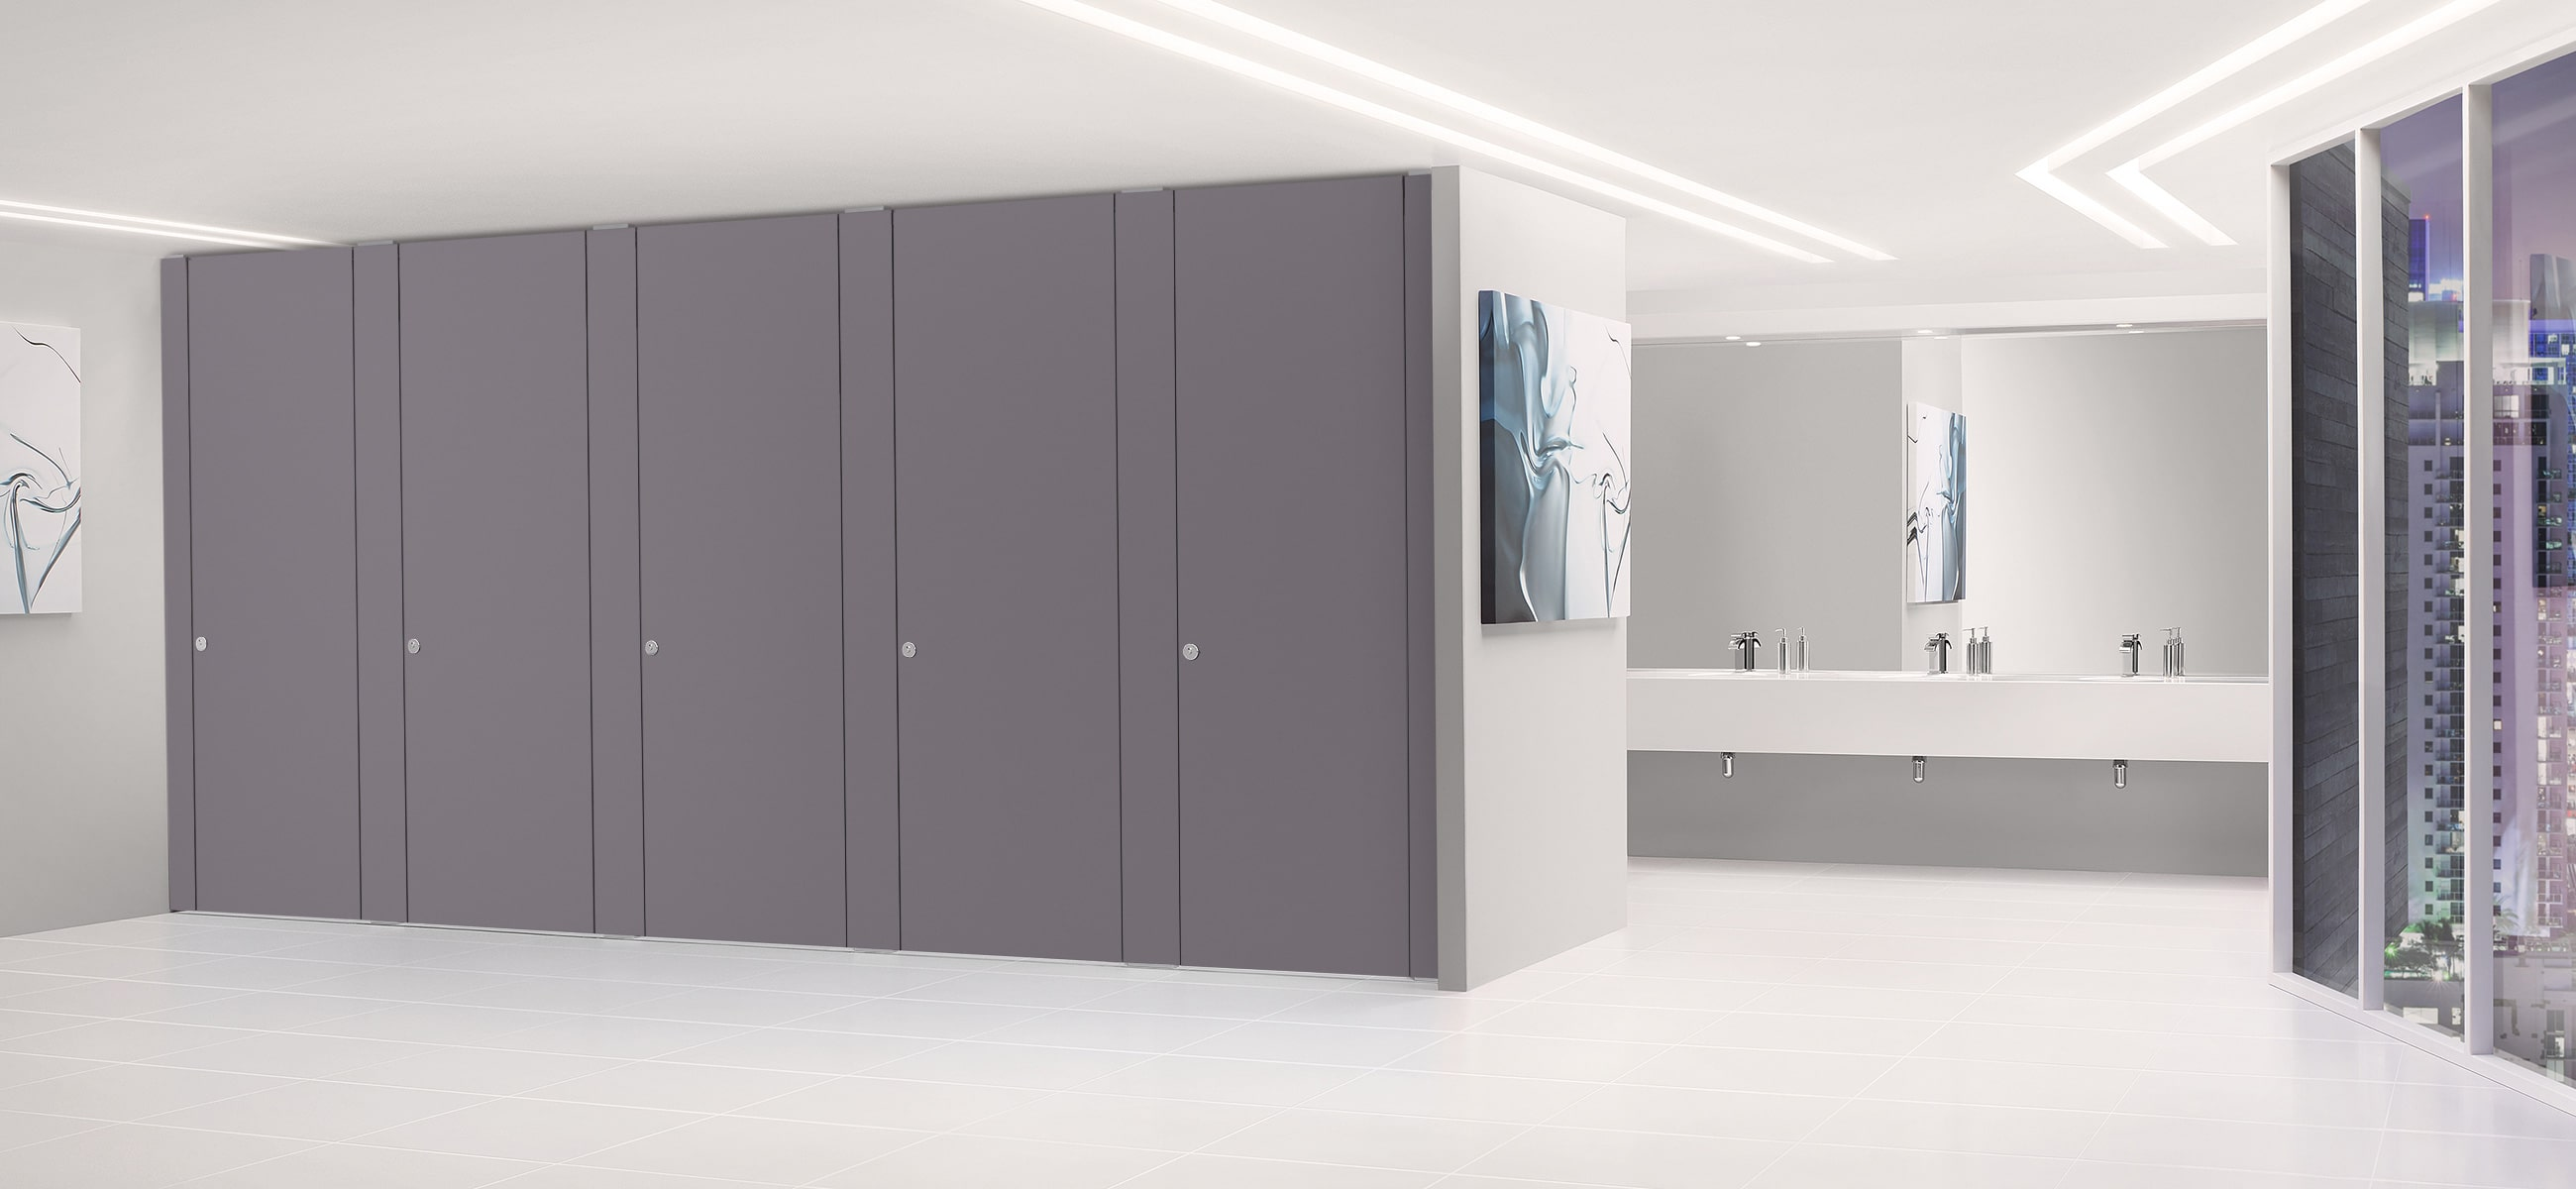 Sylan High Pressure Laminate Washroom Cubicles in Russian Blue